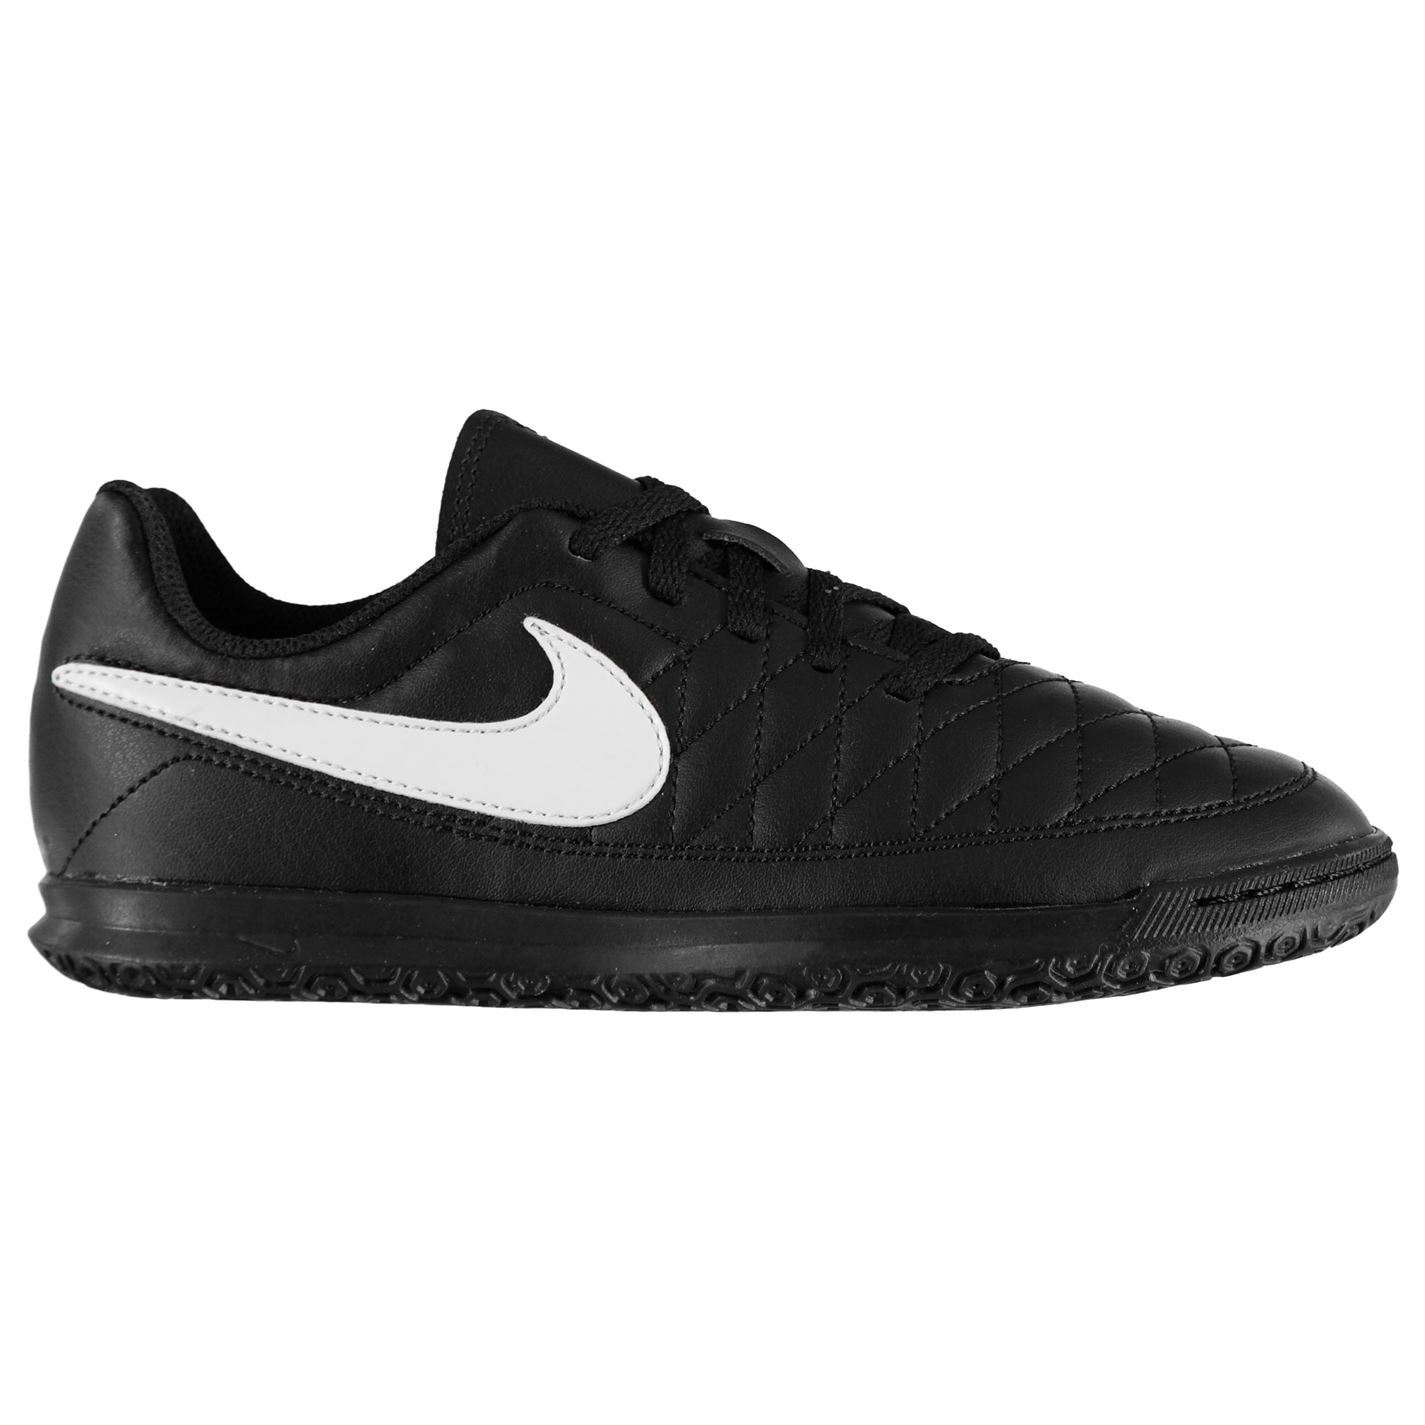 Nike-majestry-Indoor-Court-Football-formateurs-juniors-Football-Baskets-Chaussures miniature 7